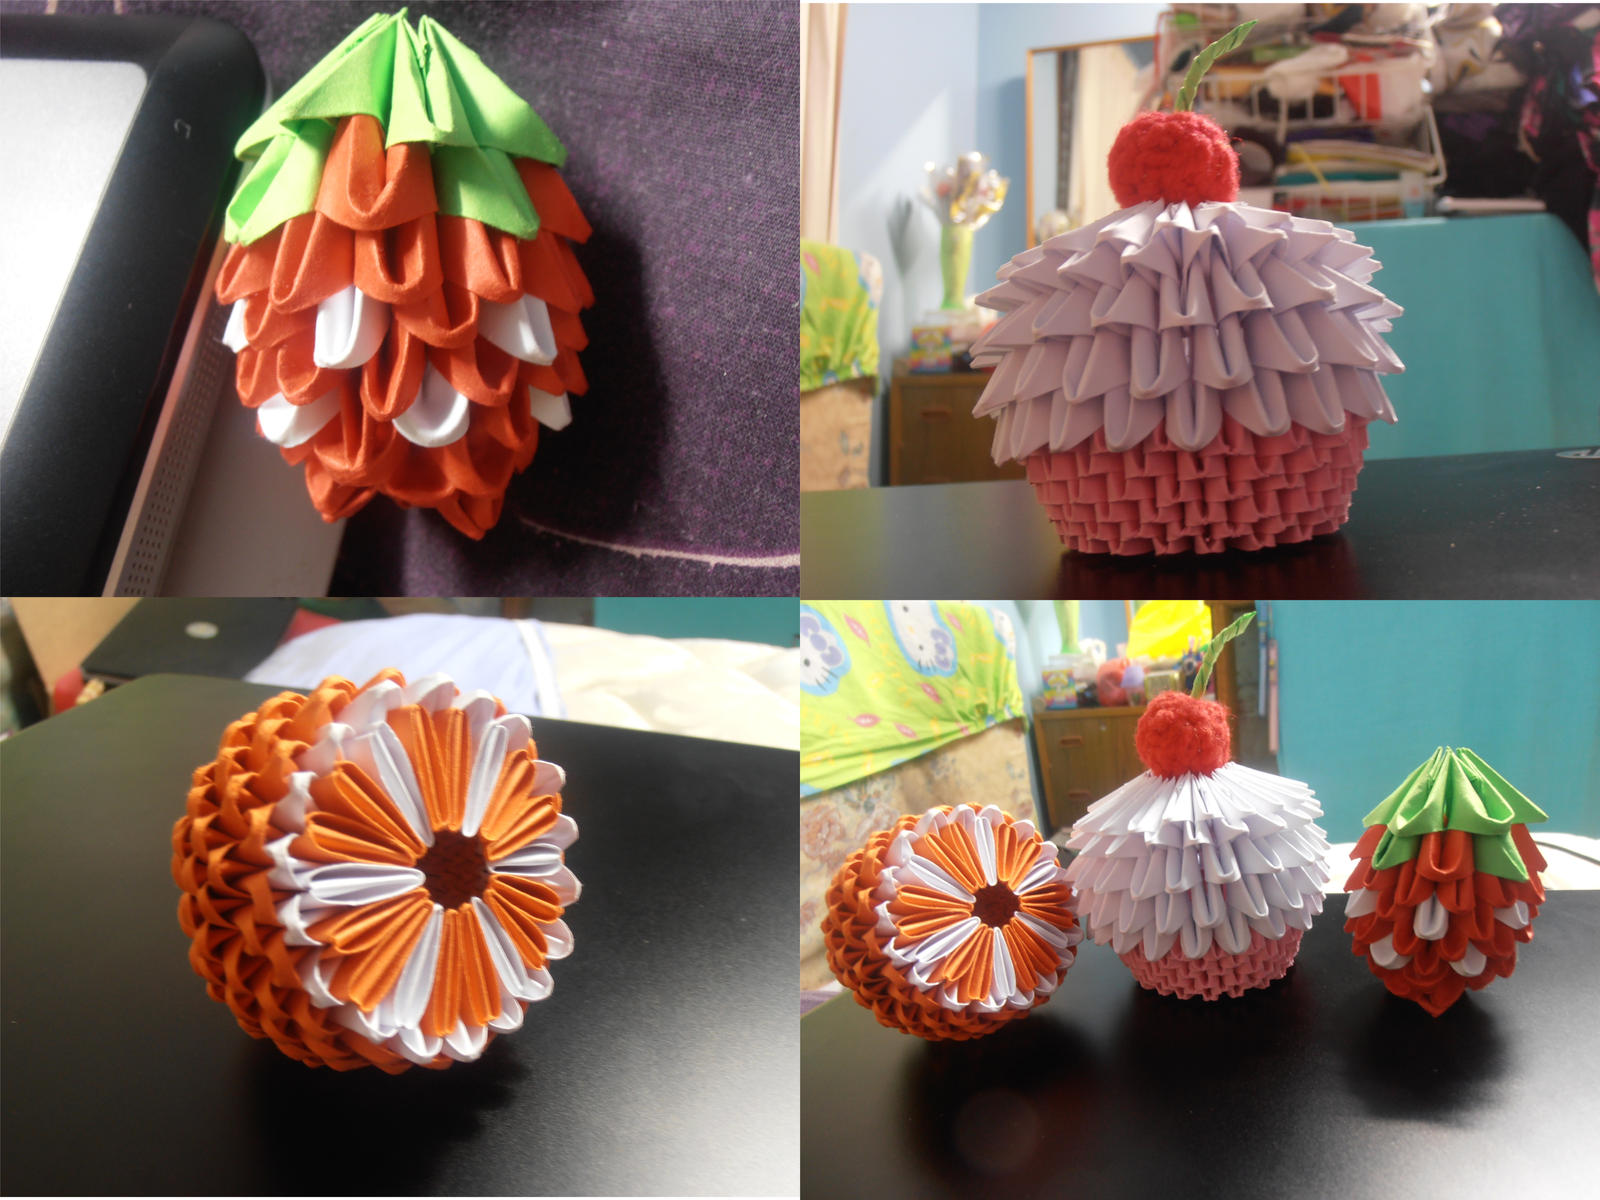 Origami 3d Cupcake Ide Dimage De Gteau Diagrams Free Download Strawberry Orange Cupcakedcheeky Angel On Deviantart